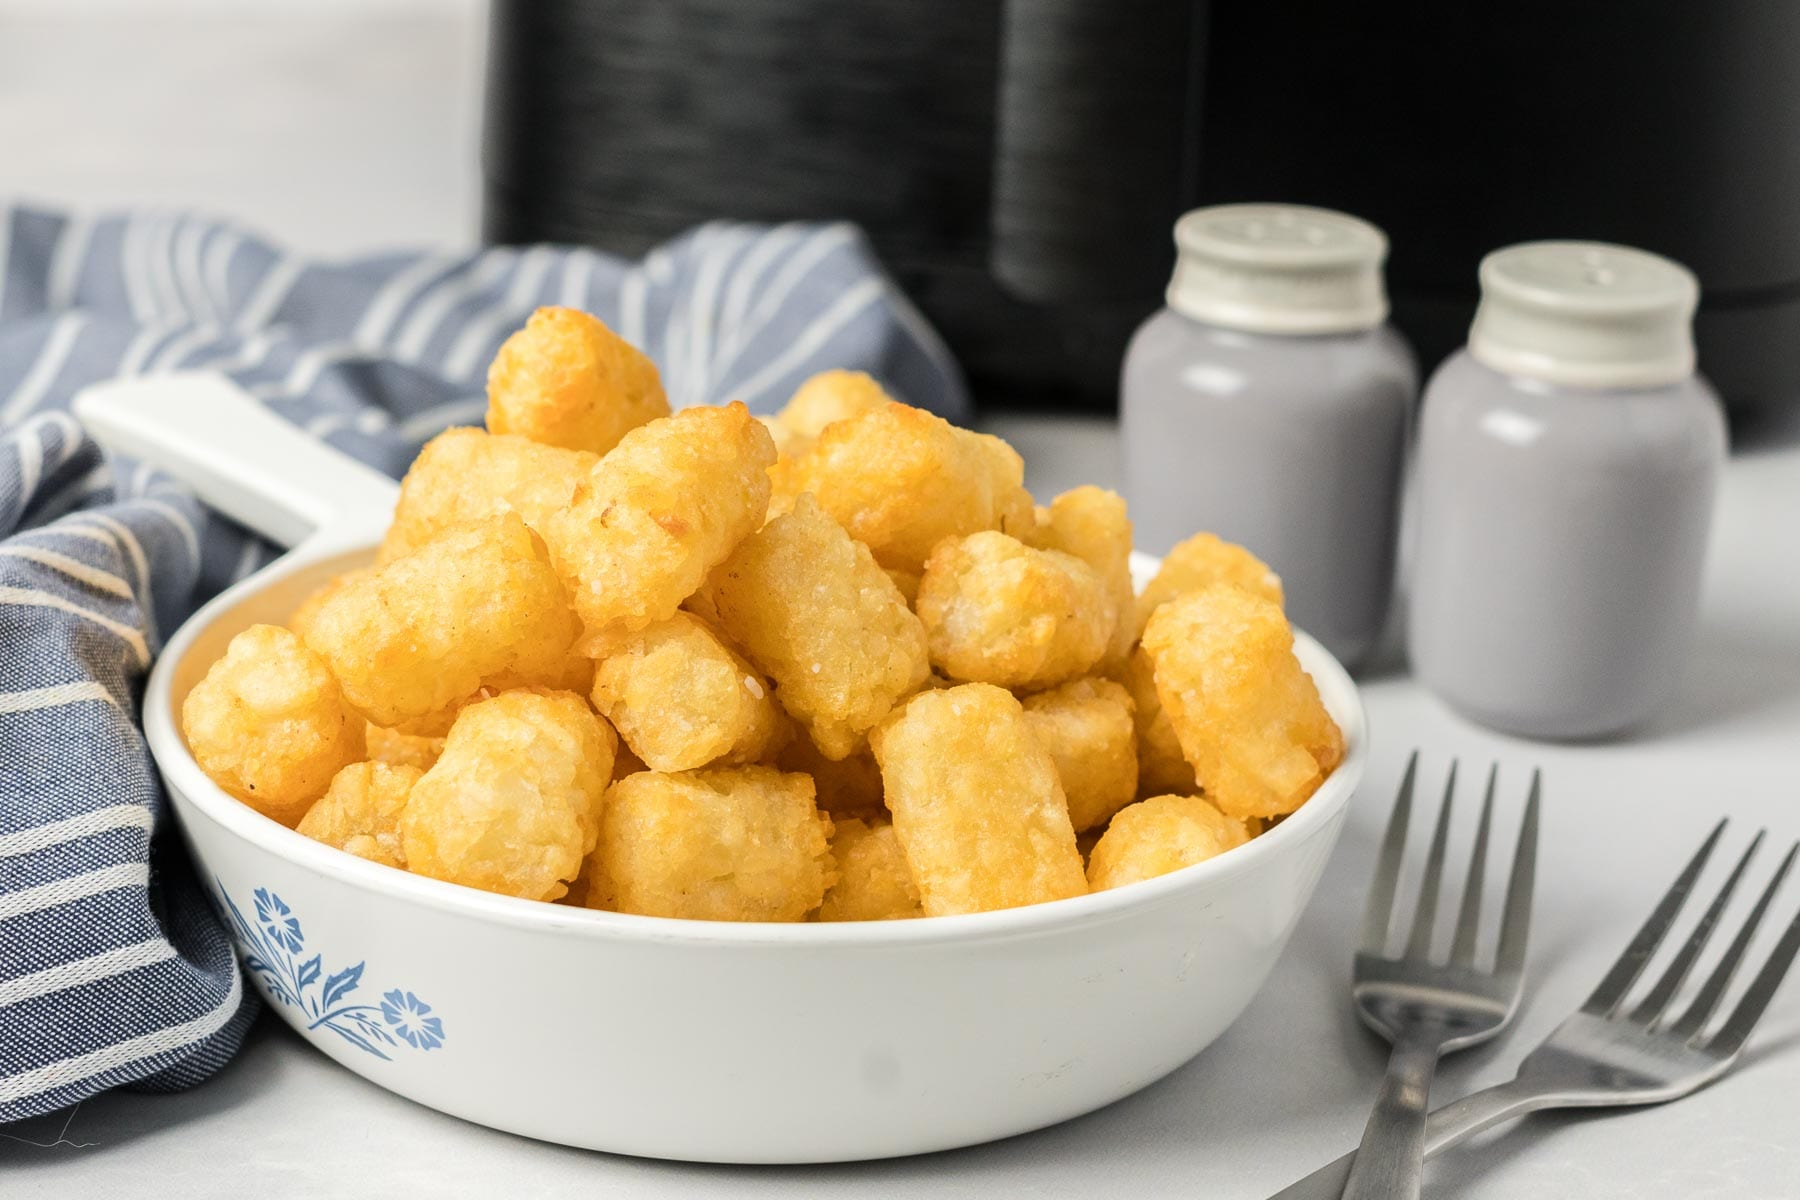 Tater tots in a bowl with salt and pepper on the side and an air fryer in the background.